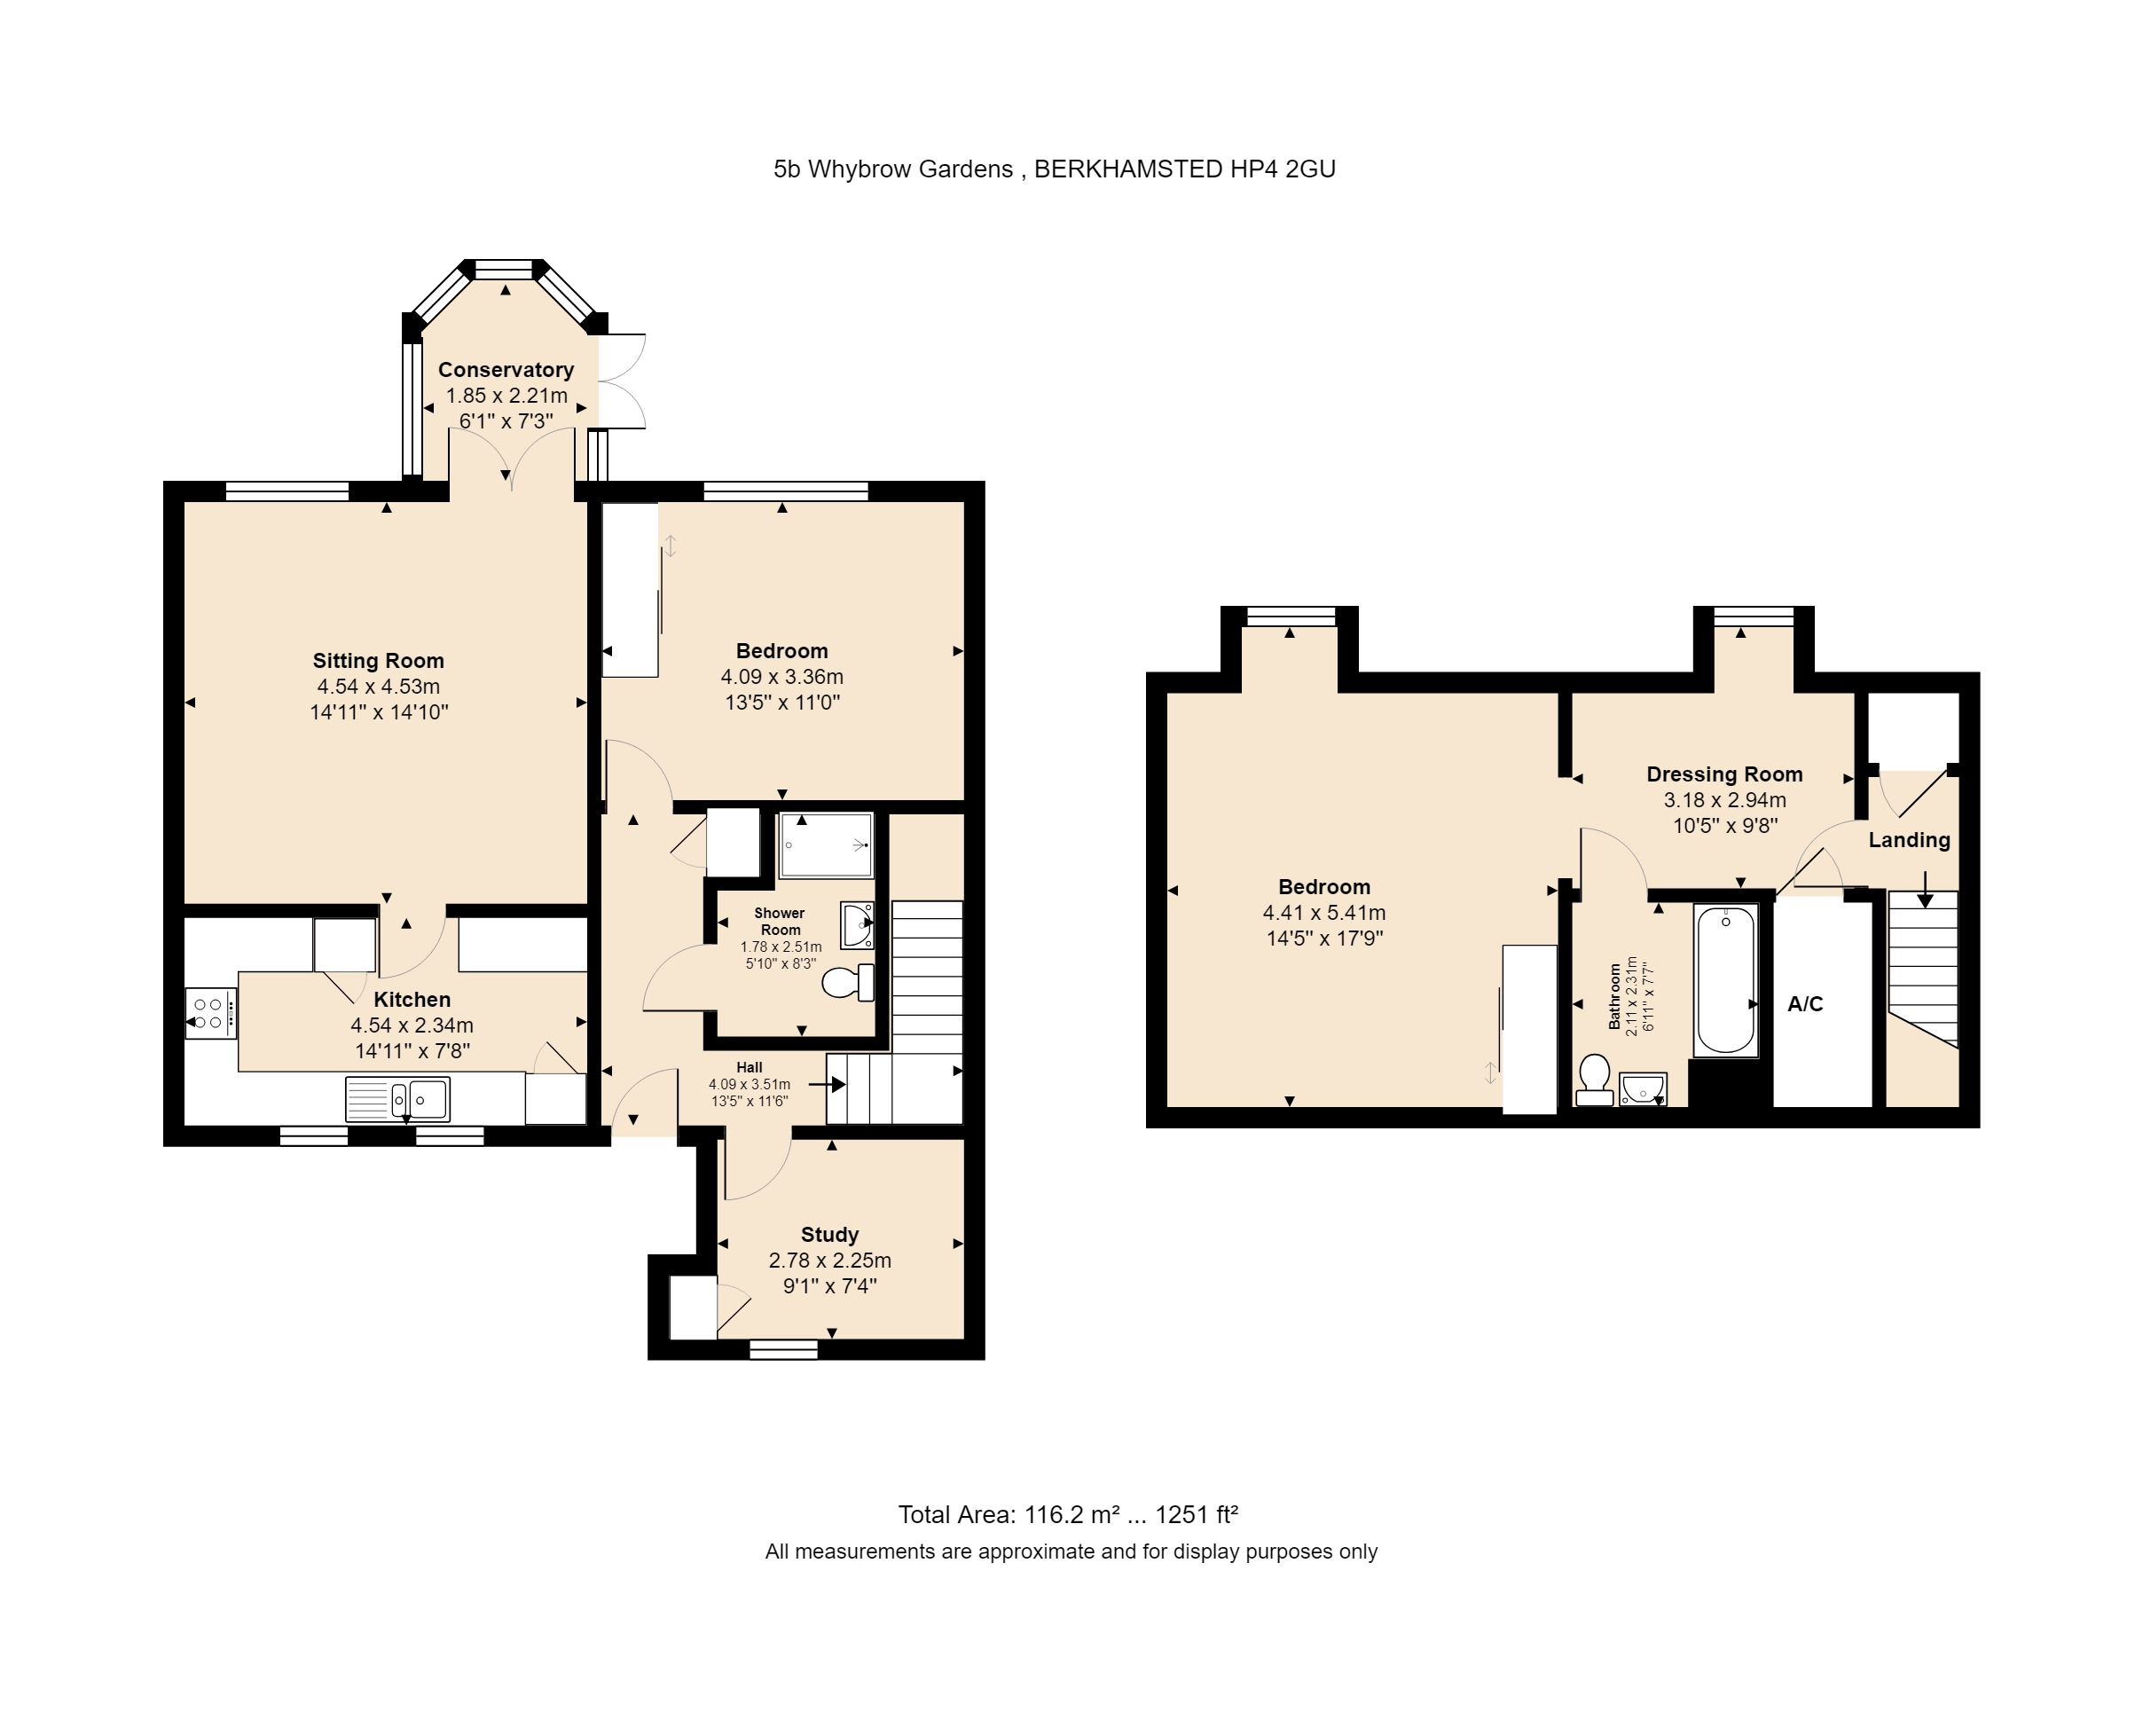 5b Whybrow Gardens Floorplan